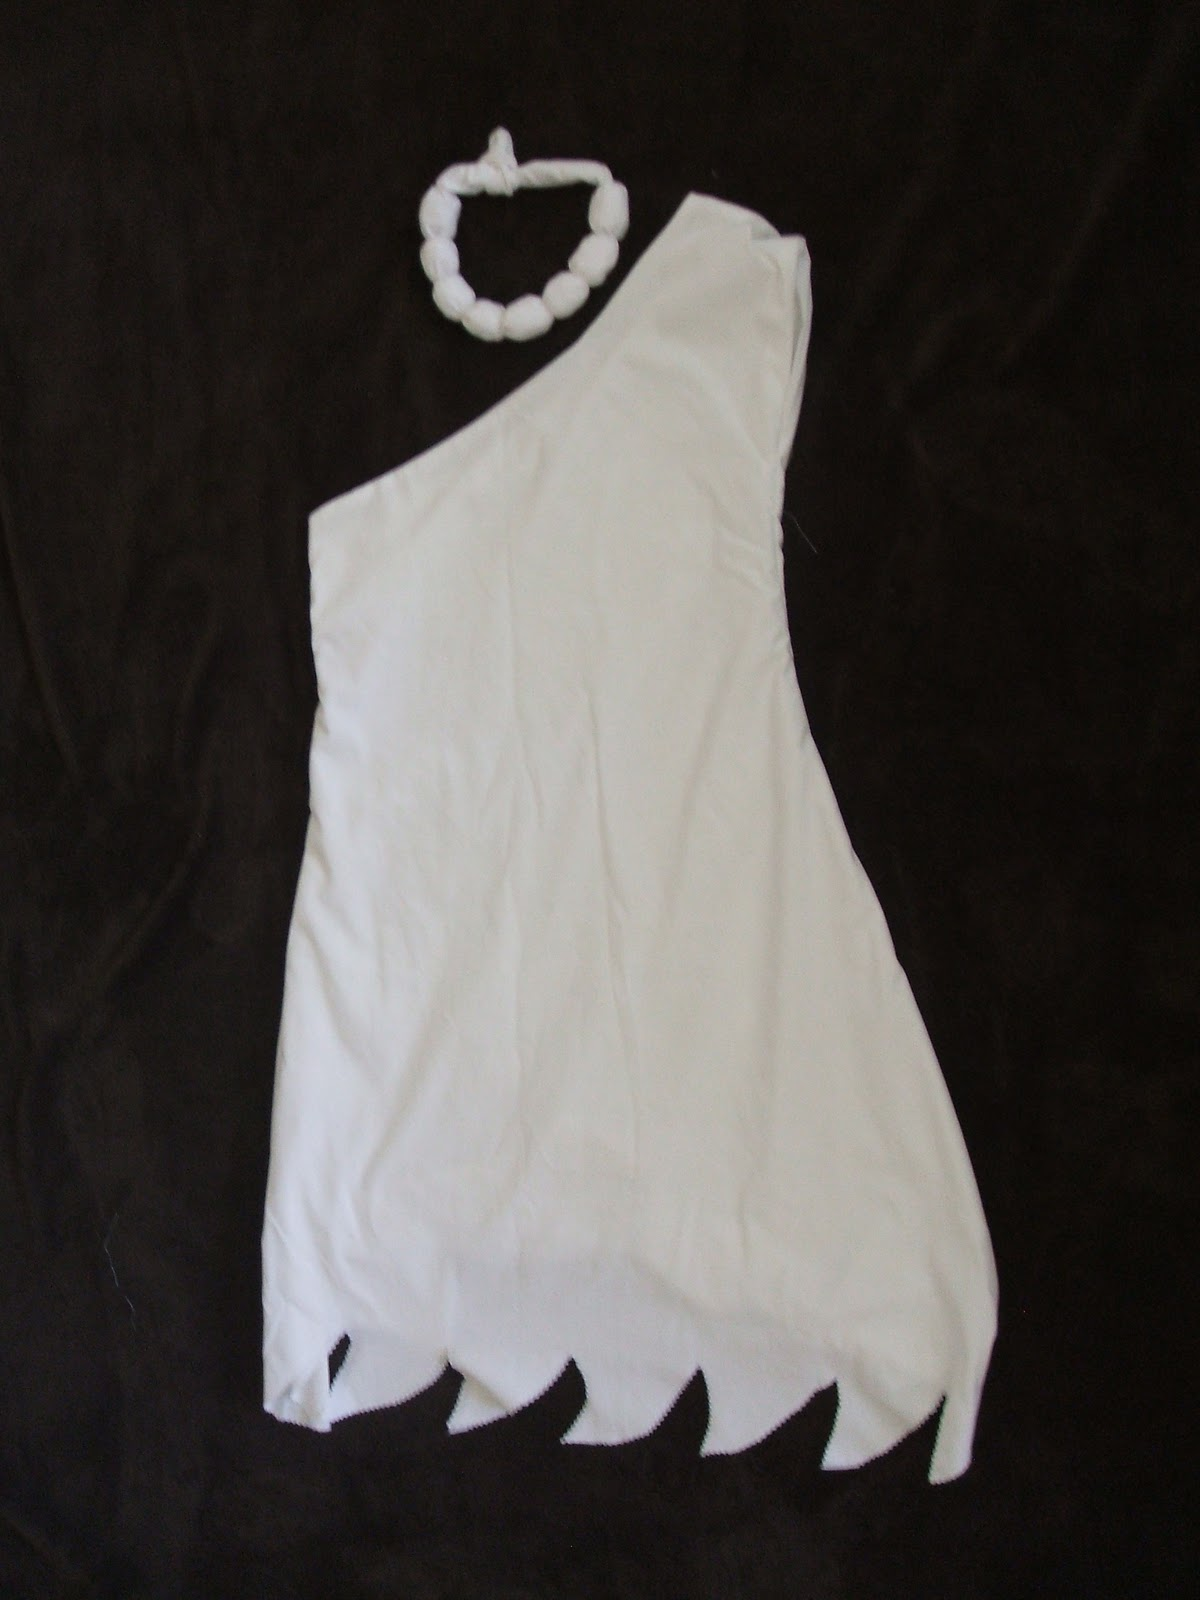 wilma flintstone costume tutorial peek a boo pages patterns fabric more. Black Bedroom Furniture Sets. Home Design Ideas